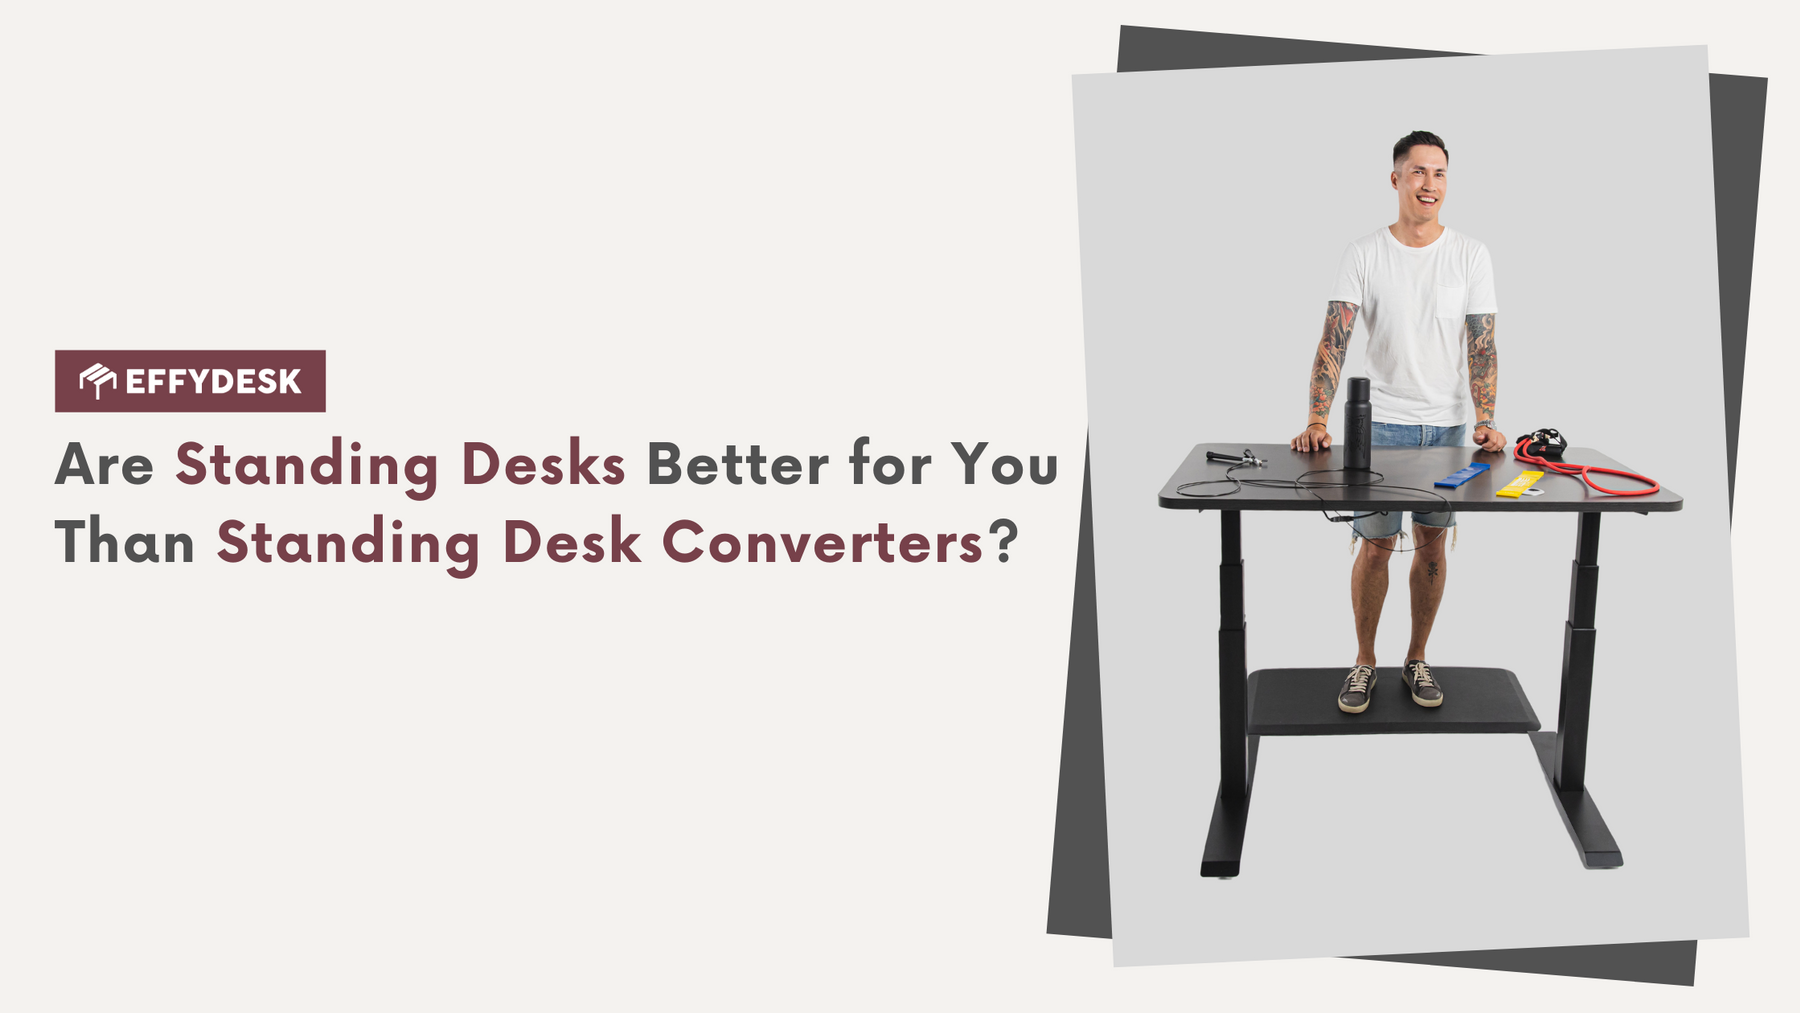 understand how standing desks are better than standing converter